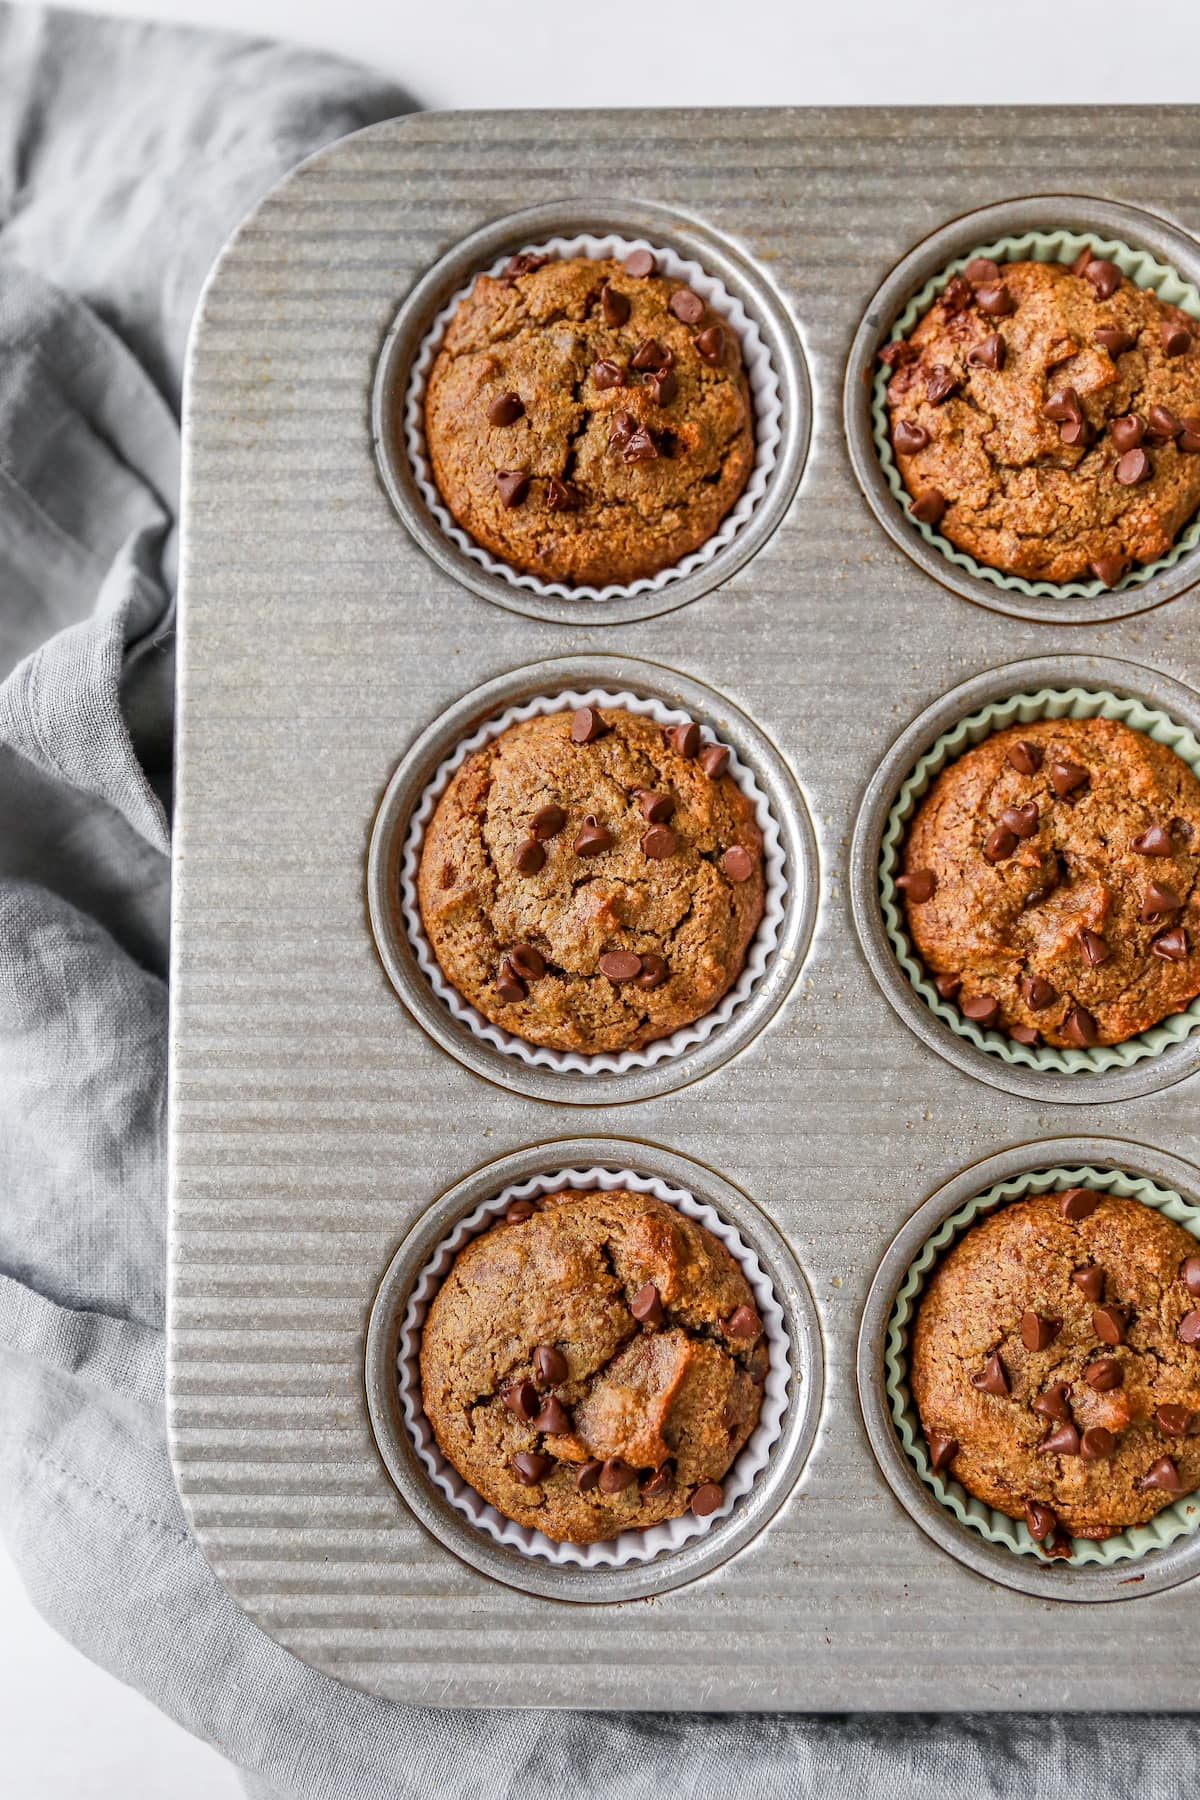 Muffin tin with chocolate chip muffins.